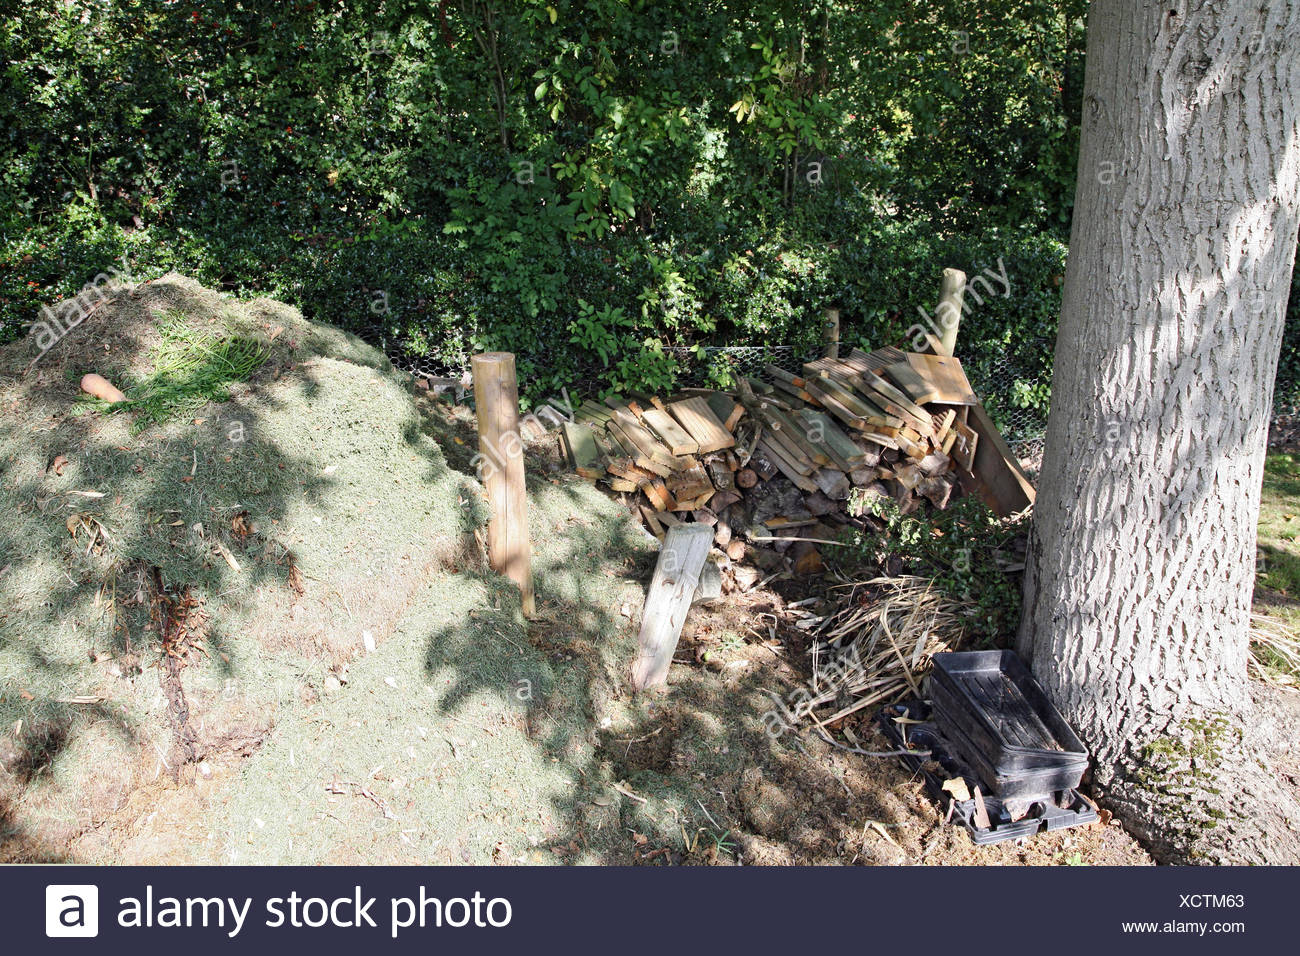 GRASS CLIPPINGS COMPOST HEAP WITH LOG PILE - Stock Image